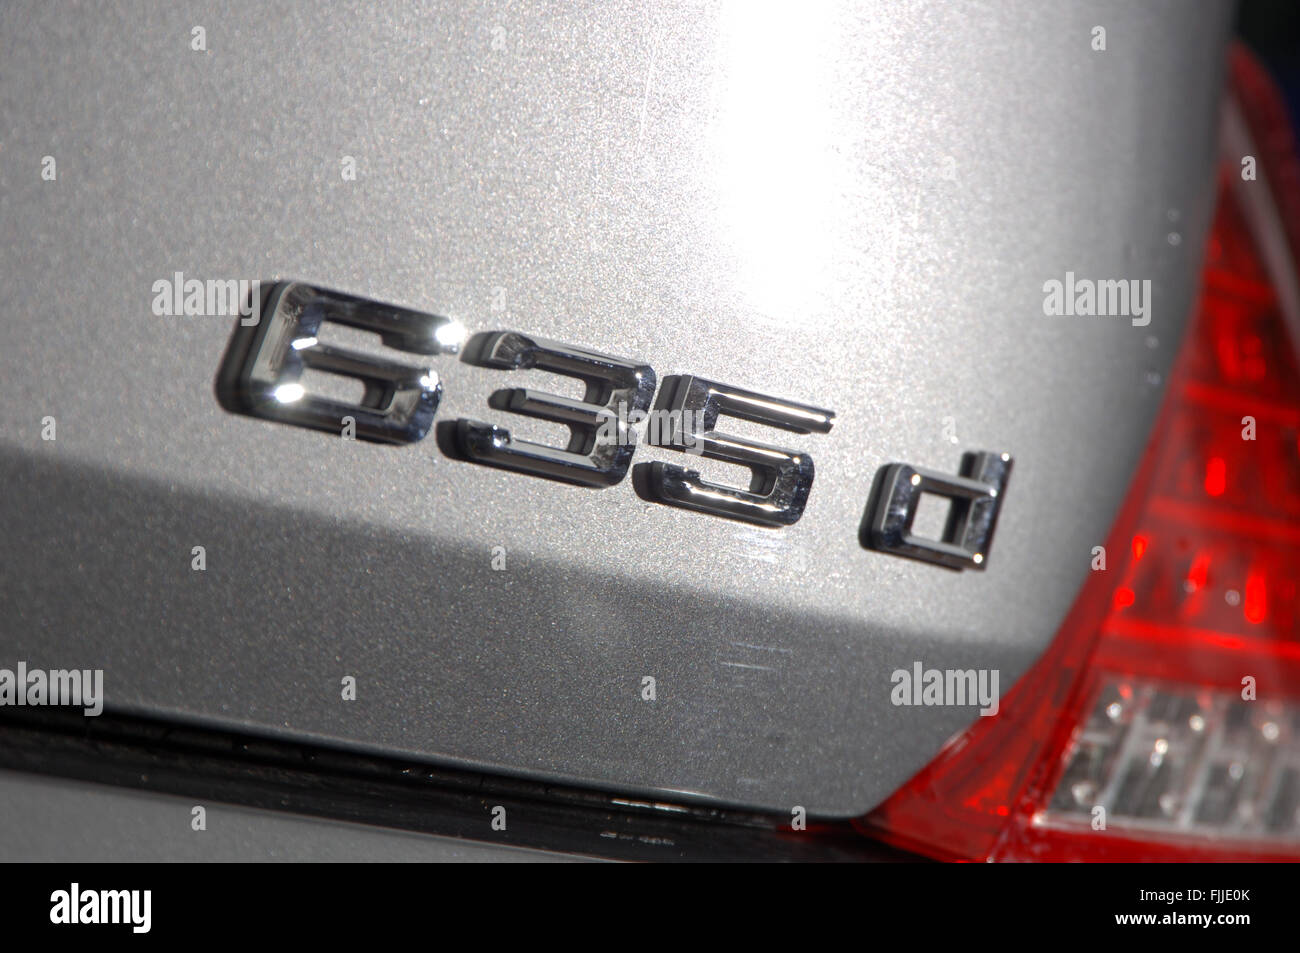 2007 BMW 635d performance diesel convertible soft top car - Stock Image